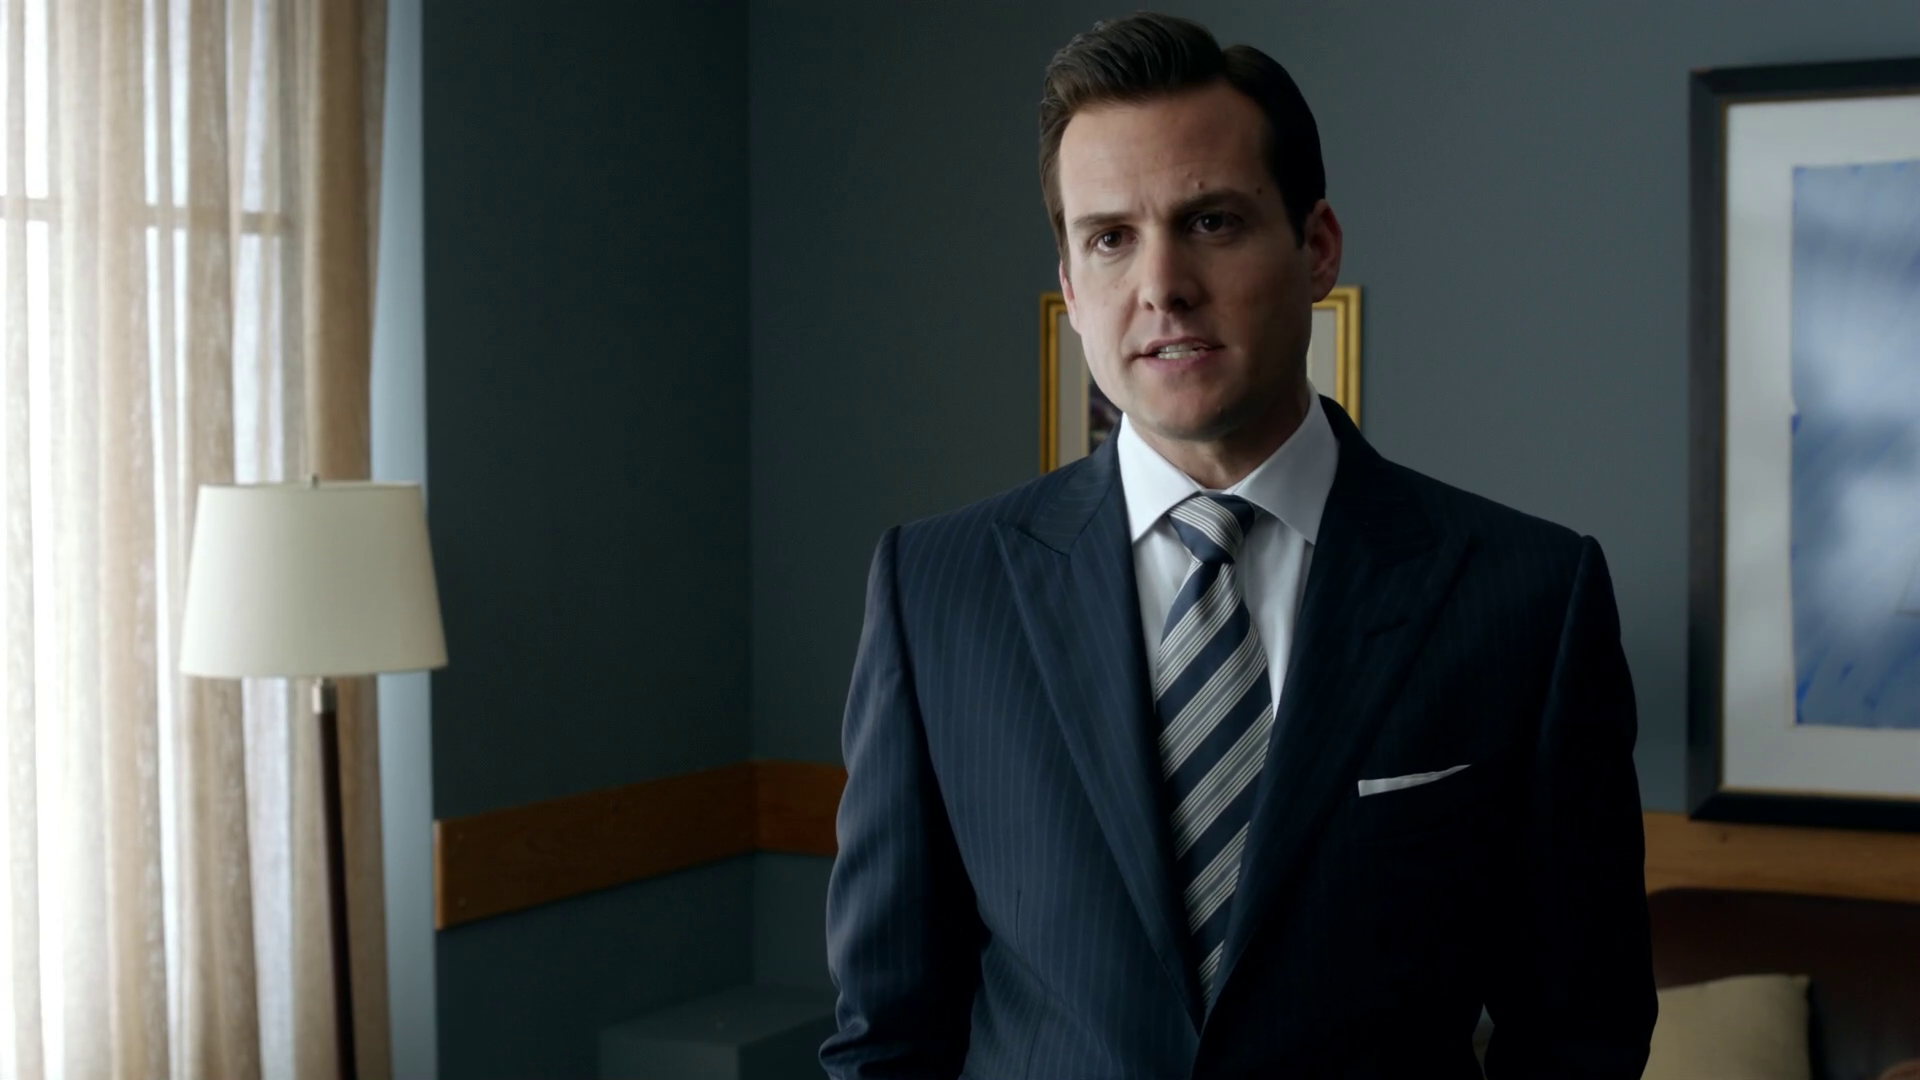 suits harvey dating After years of being best friends and professional soulmates, donna and harvey might start something new.